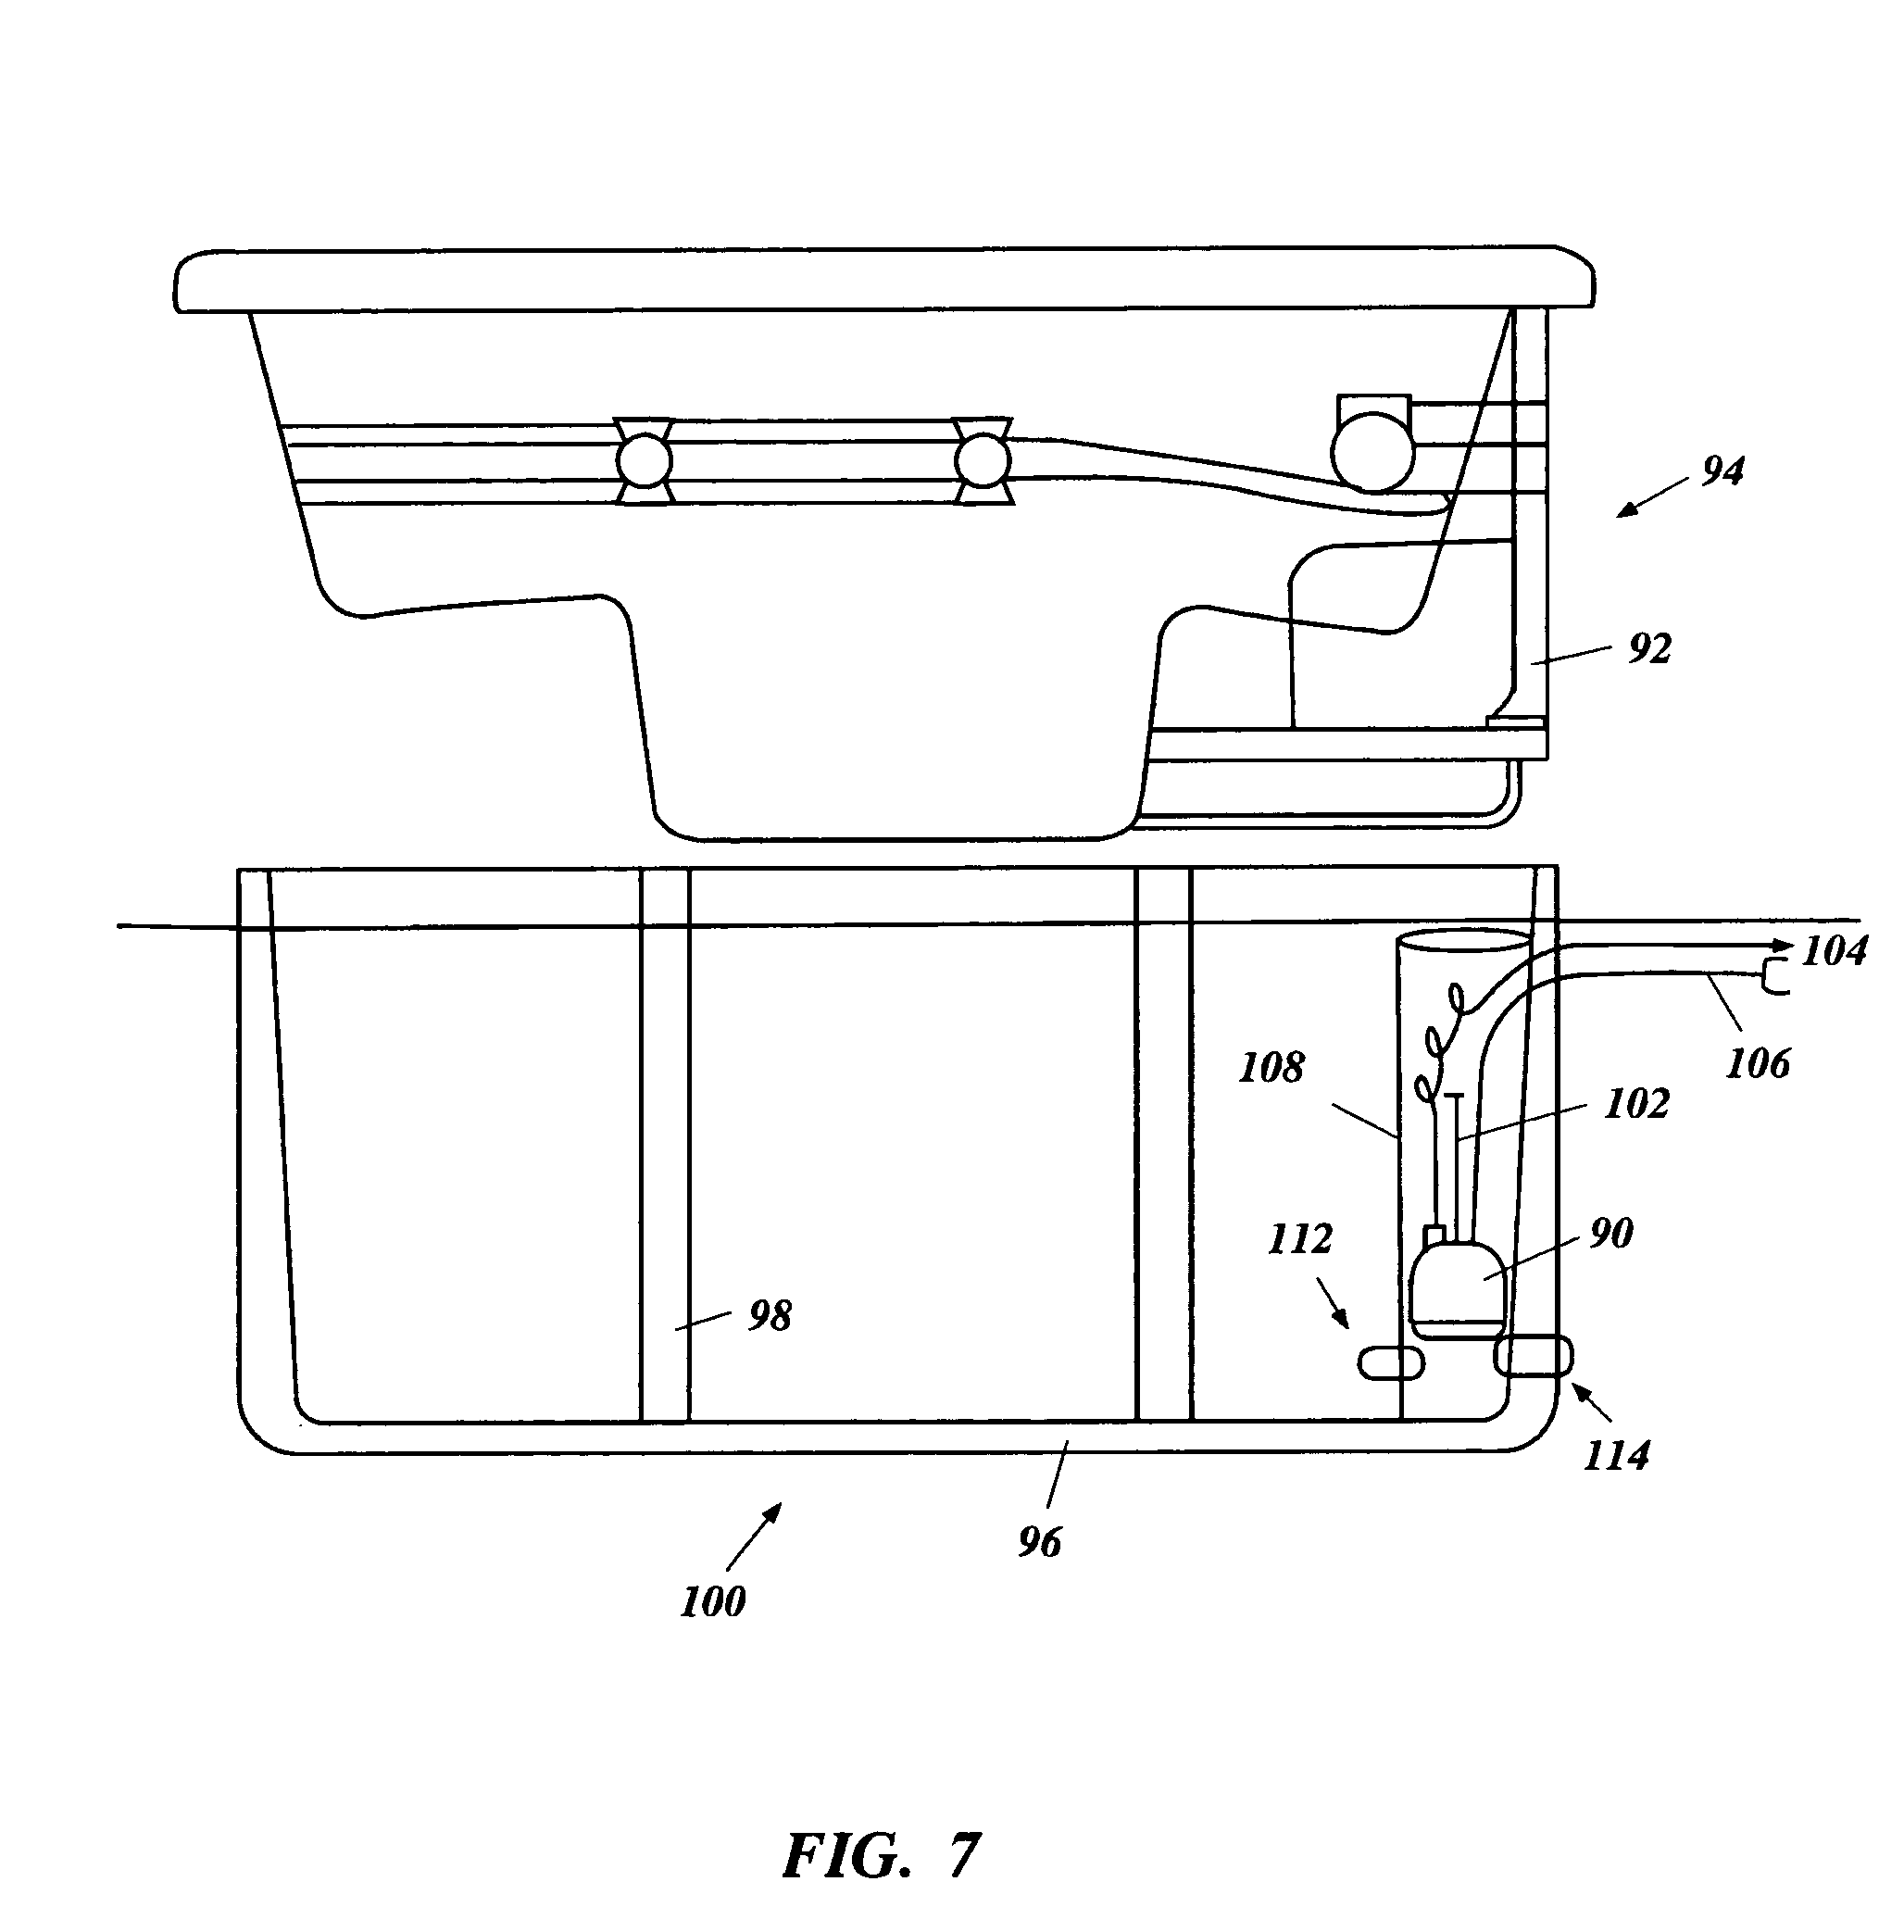 Jacuzzi Pool Dimensions Patent Us7020910 Portable Spa Google Patents